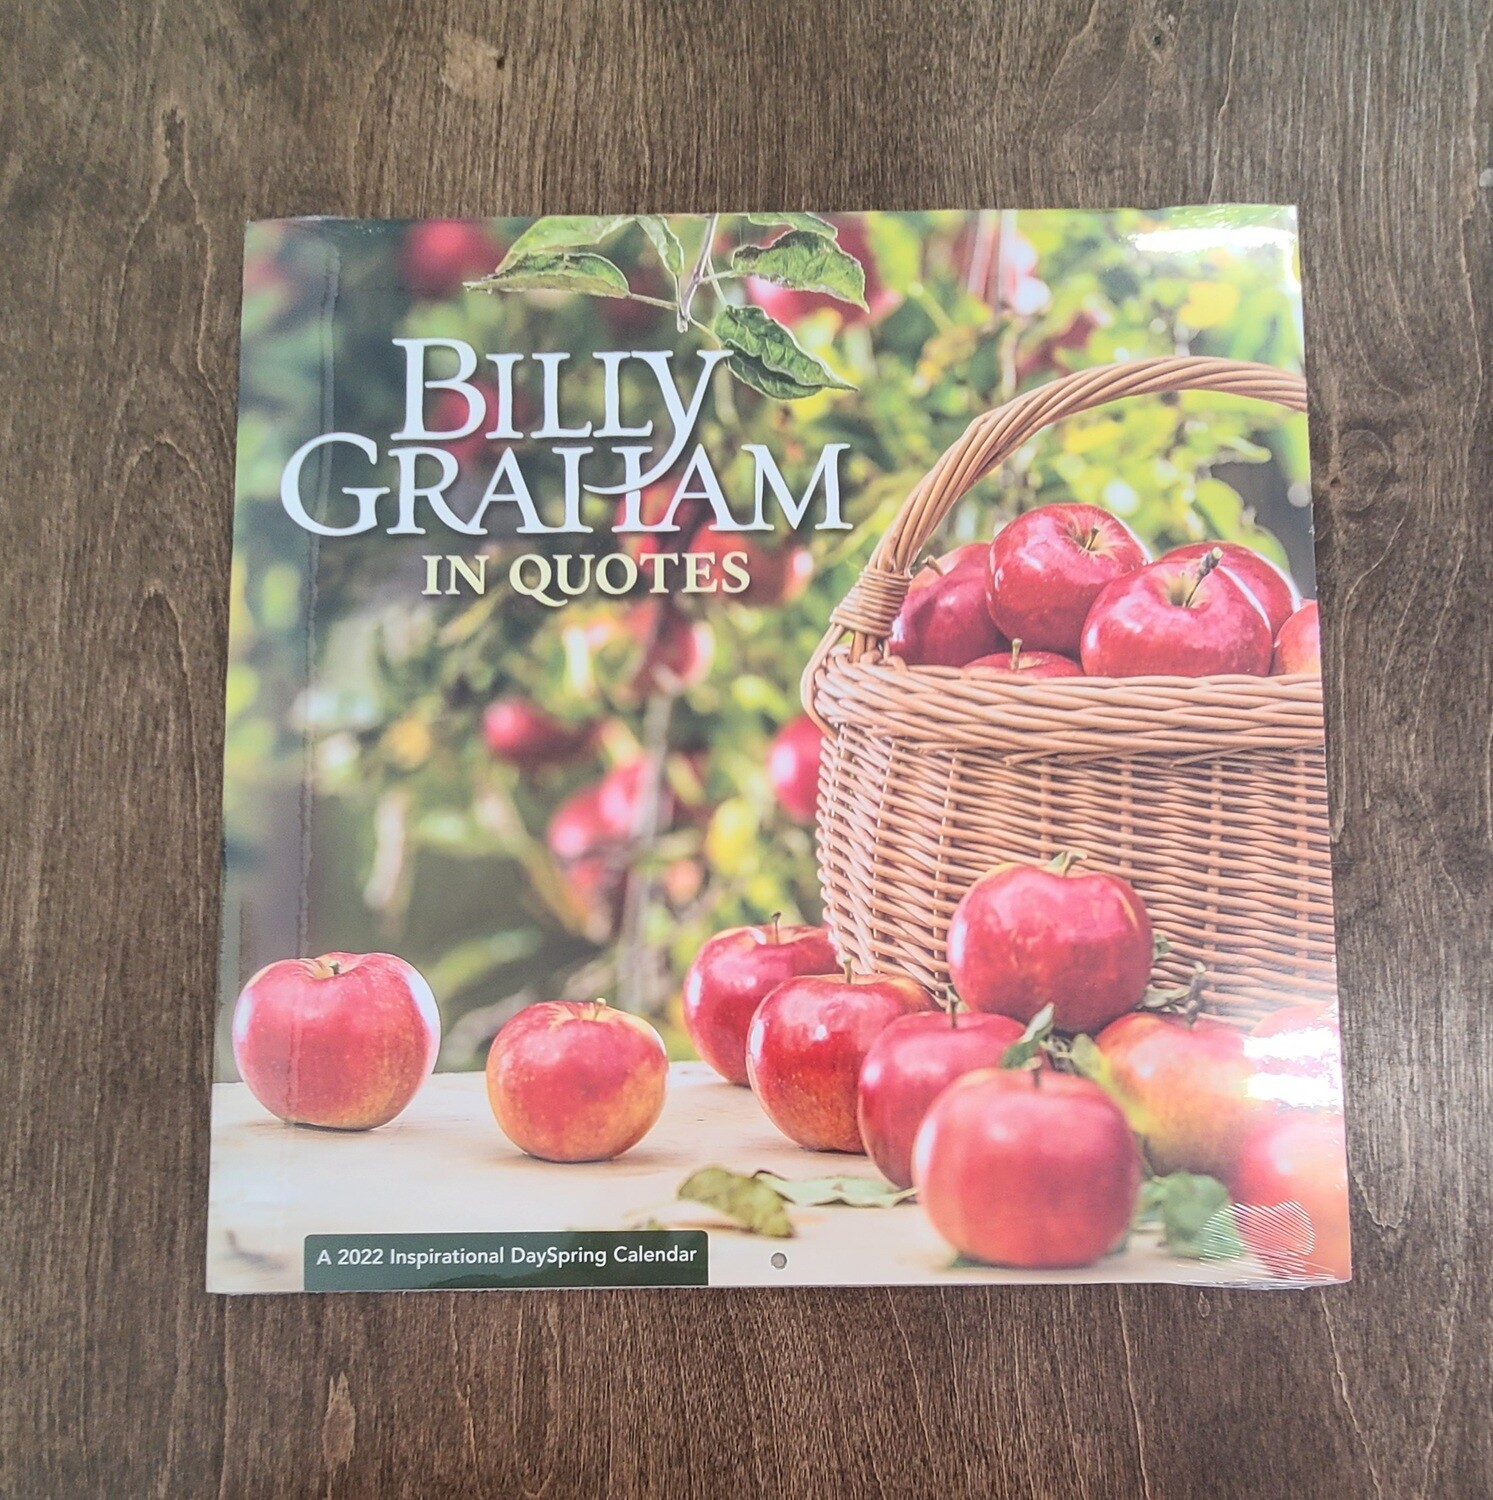 Billy Graham in Quotes Large Inspirational Calendar of 2022